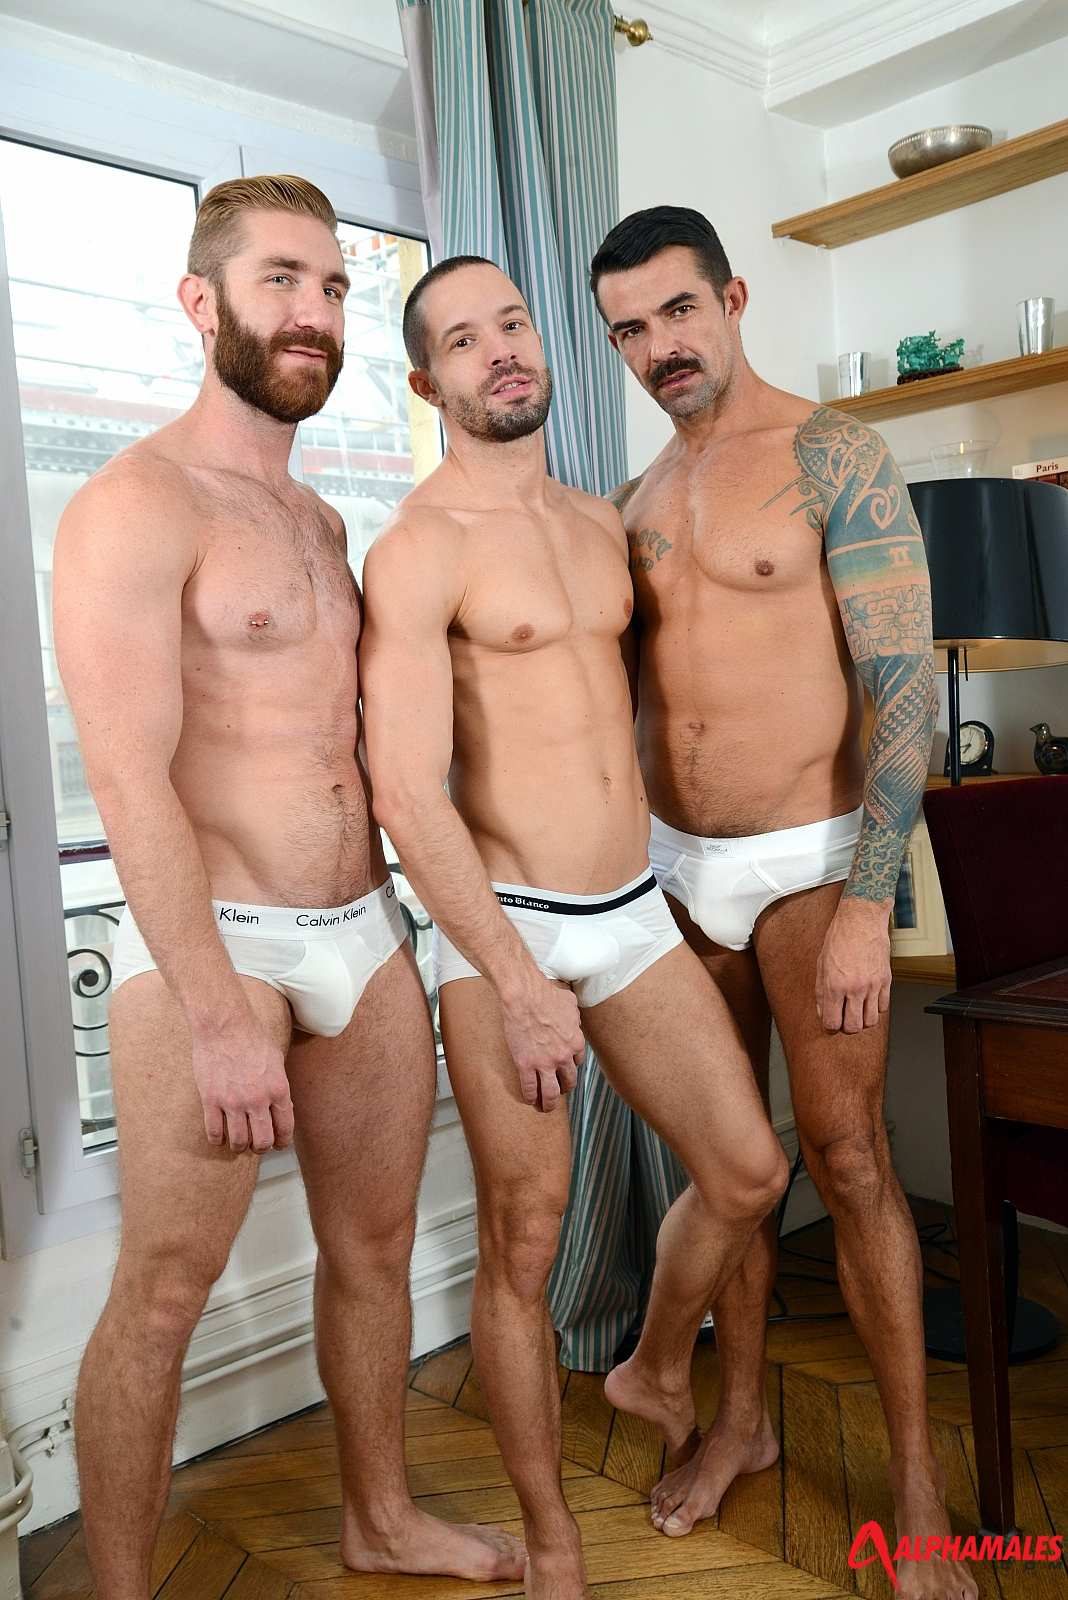 Geoffrey Paine and Joe Gunn in a threesome with Tony Axel for gay porn site Alpha Males